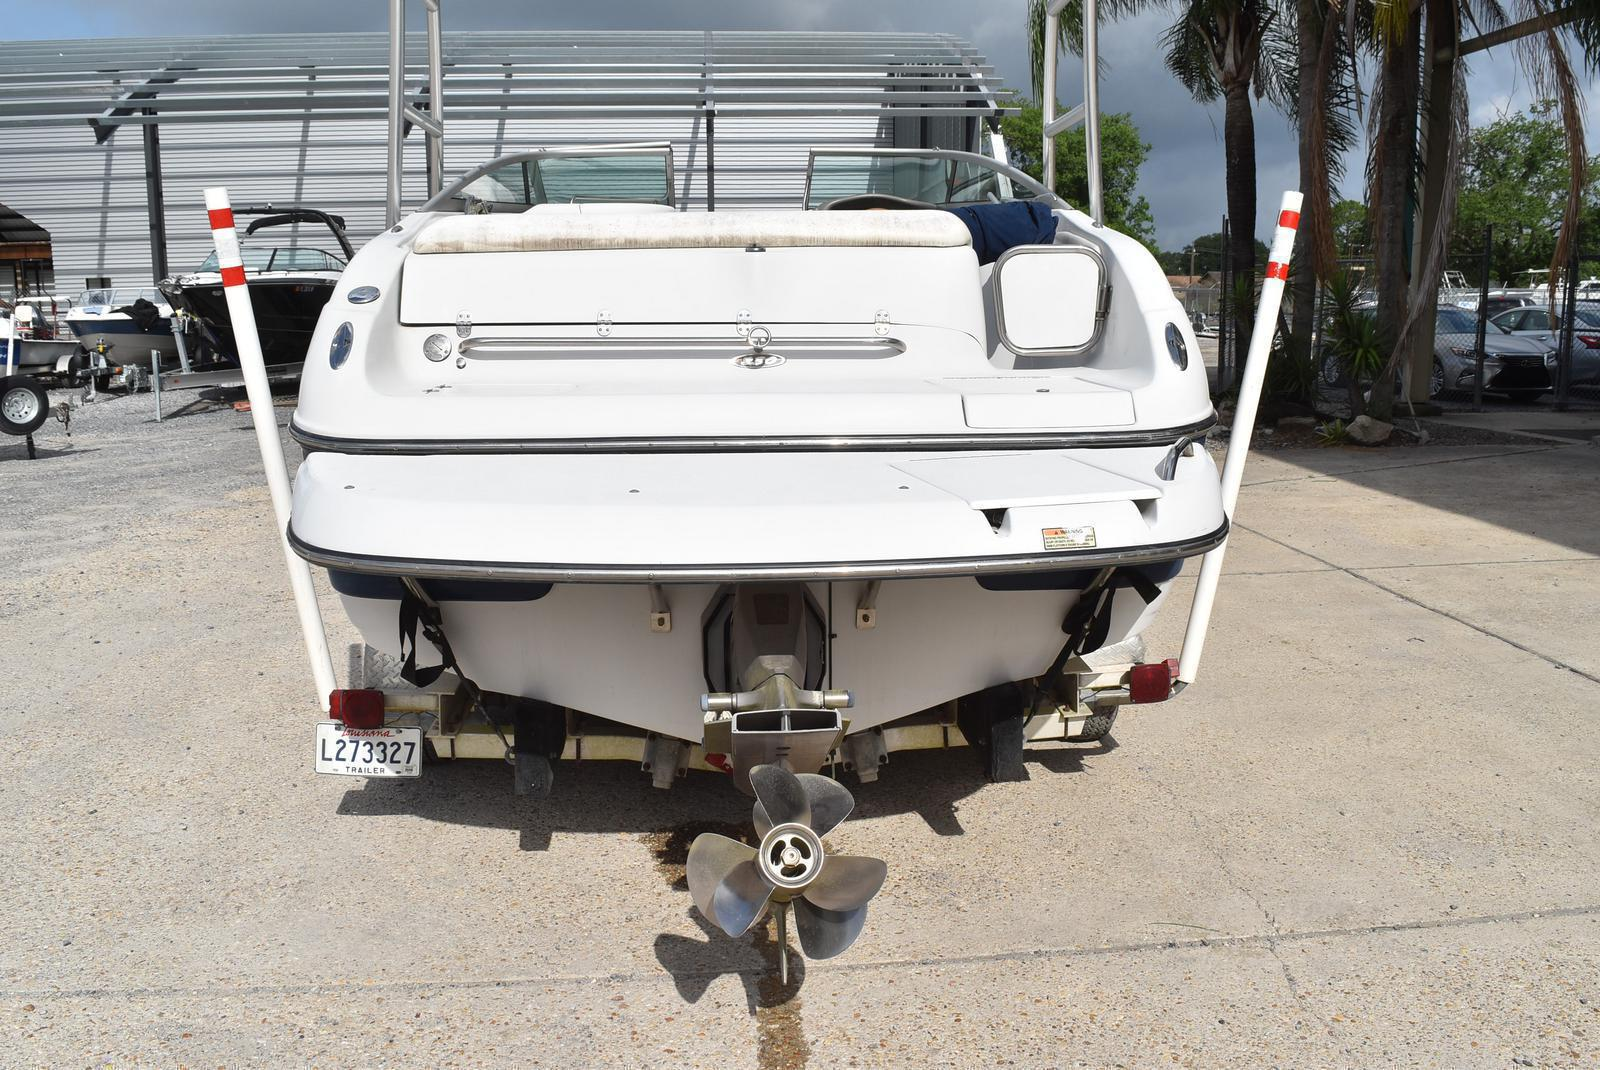 2003 Crownline boat for sale, model of the boat is 230 BR & Image # 8 of 16